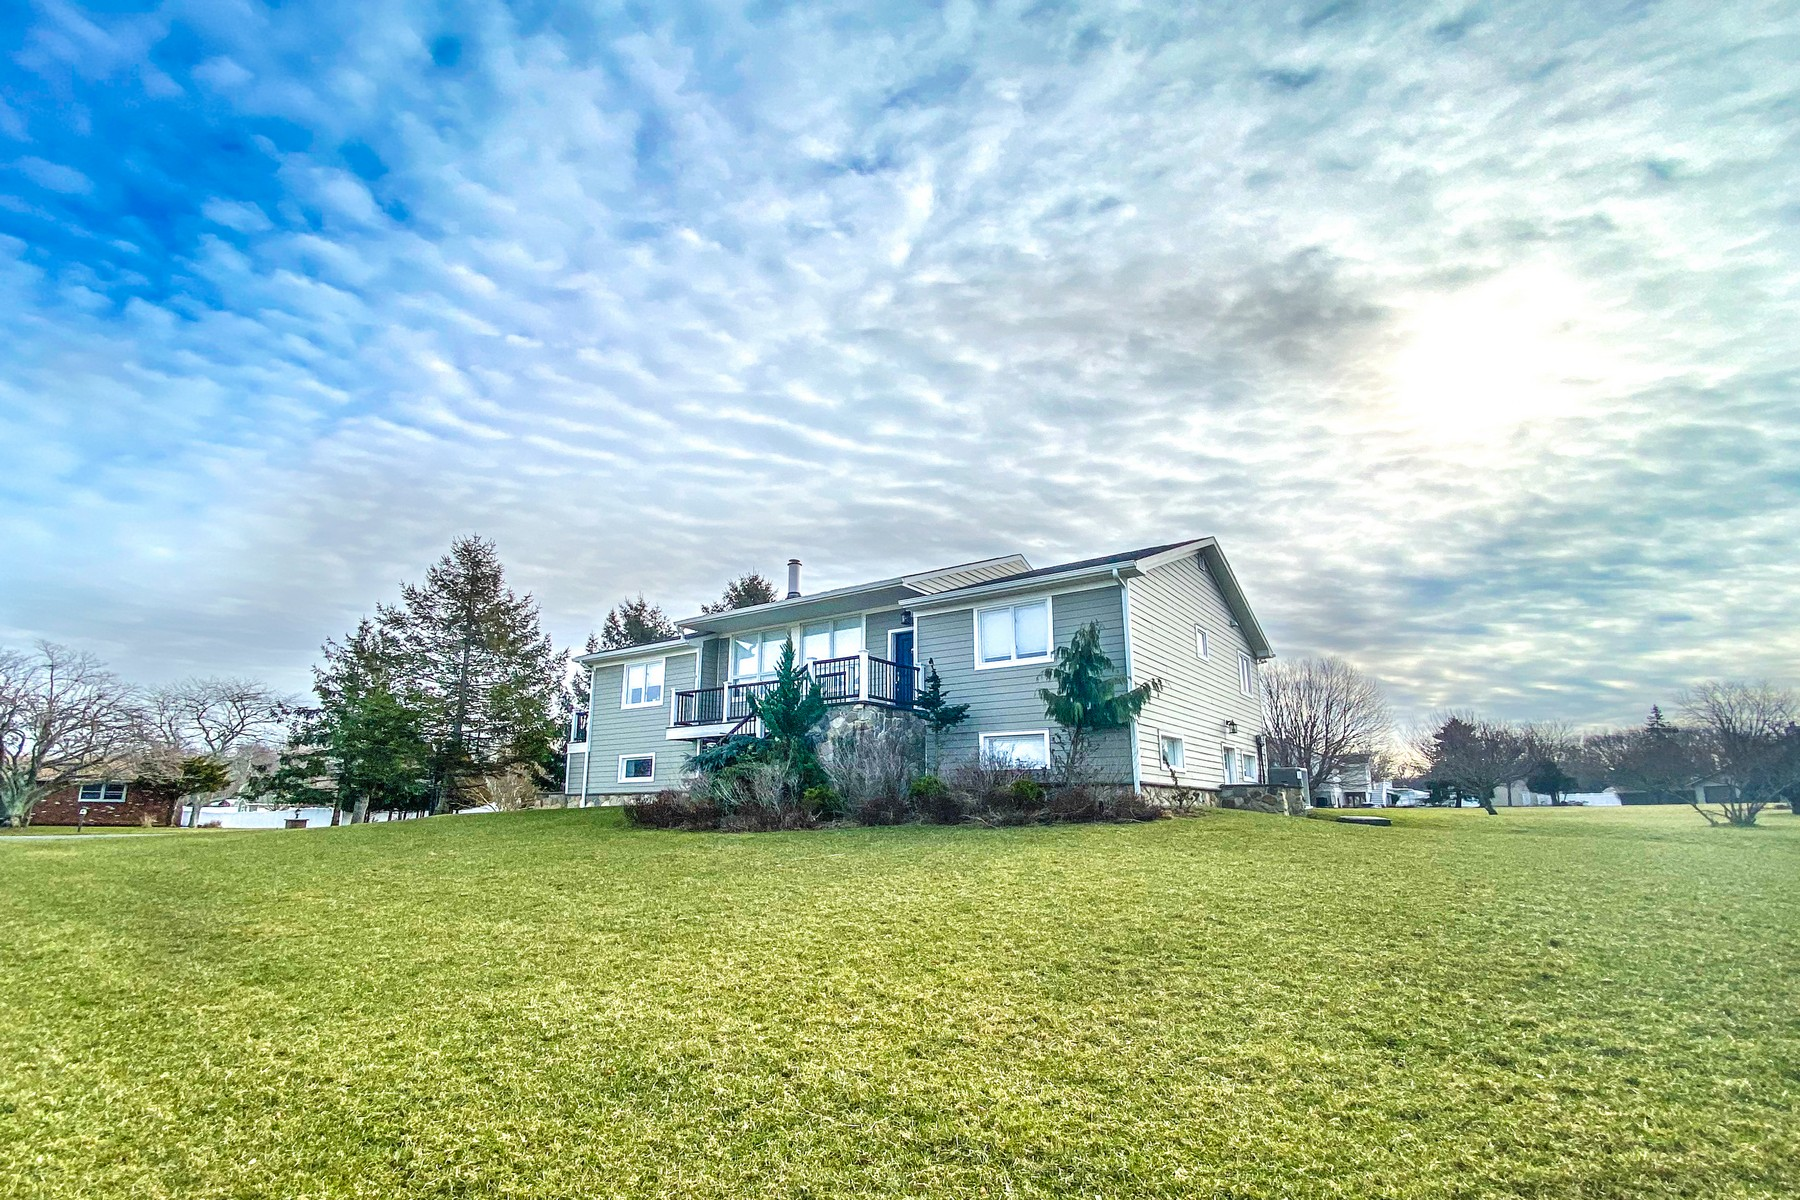 Single Family Homes for Sale at Greenport 80 Wild Cherry Way Greenport, New York 11944 United States